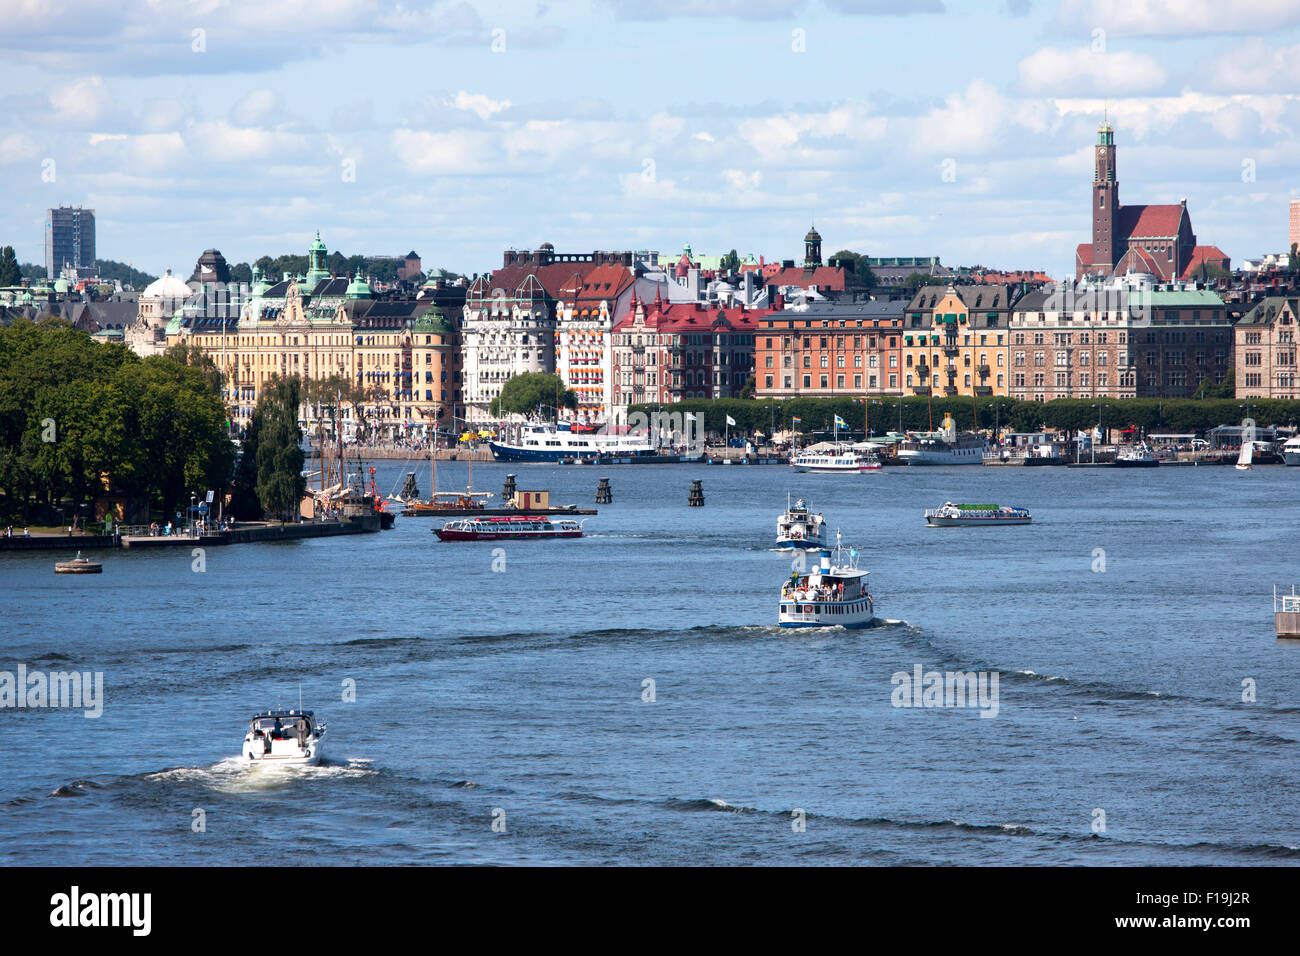 Stockholm the capital of Sweden and most populous city in the Nordic region harbour of Skeppsbron - Stock Image